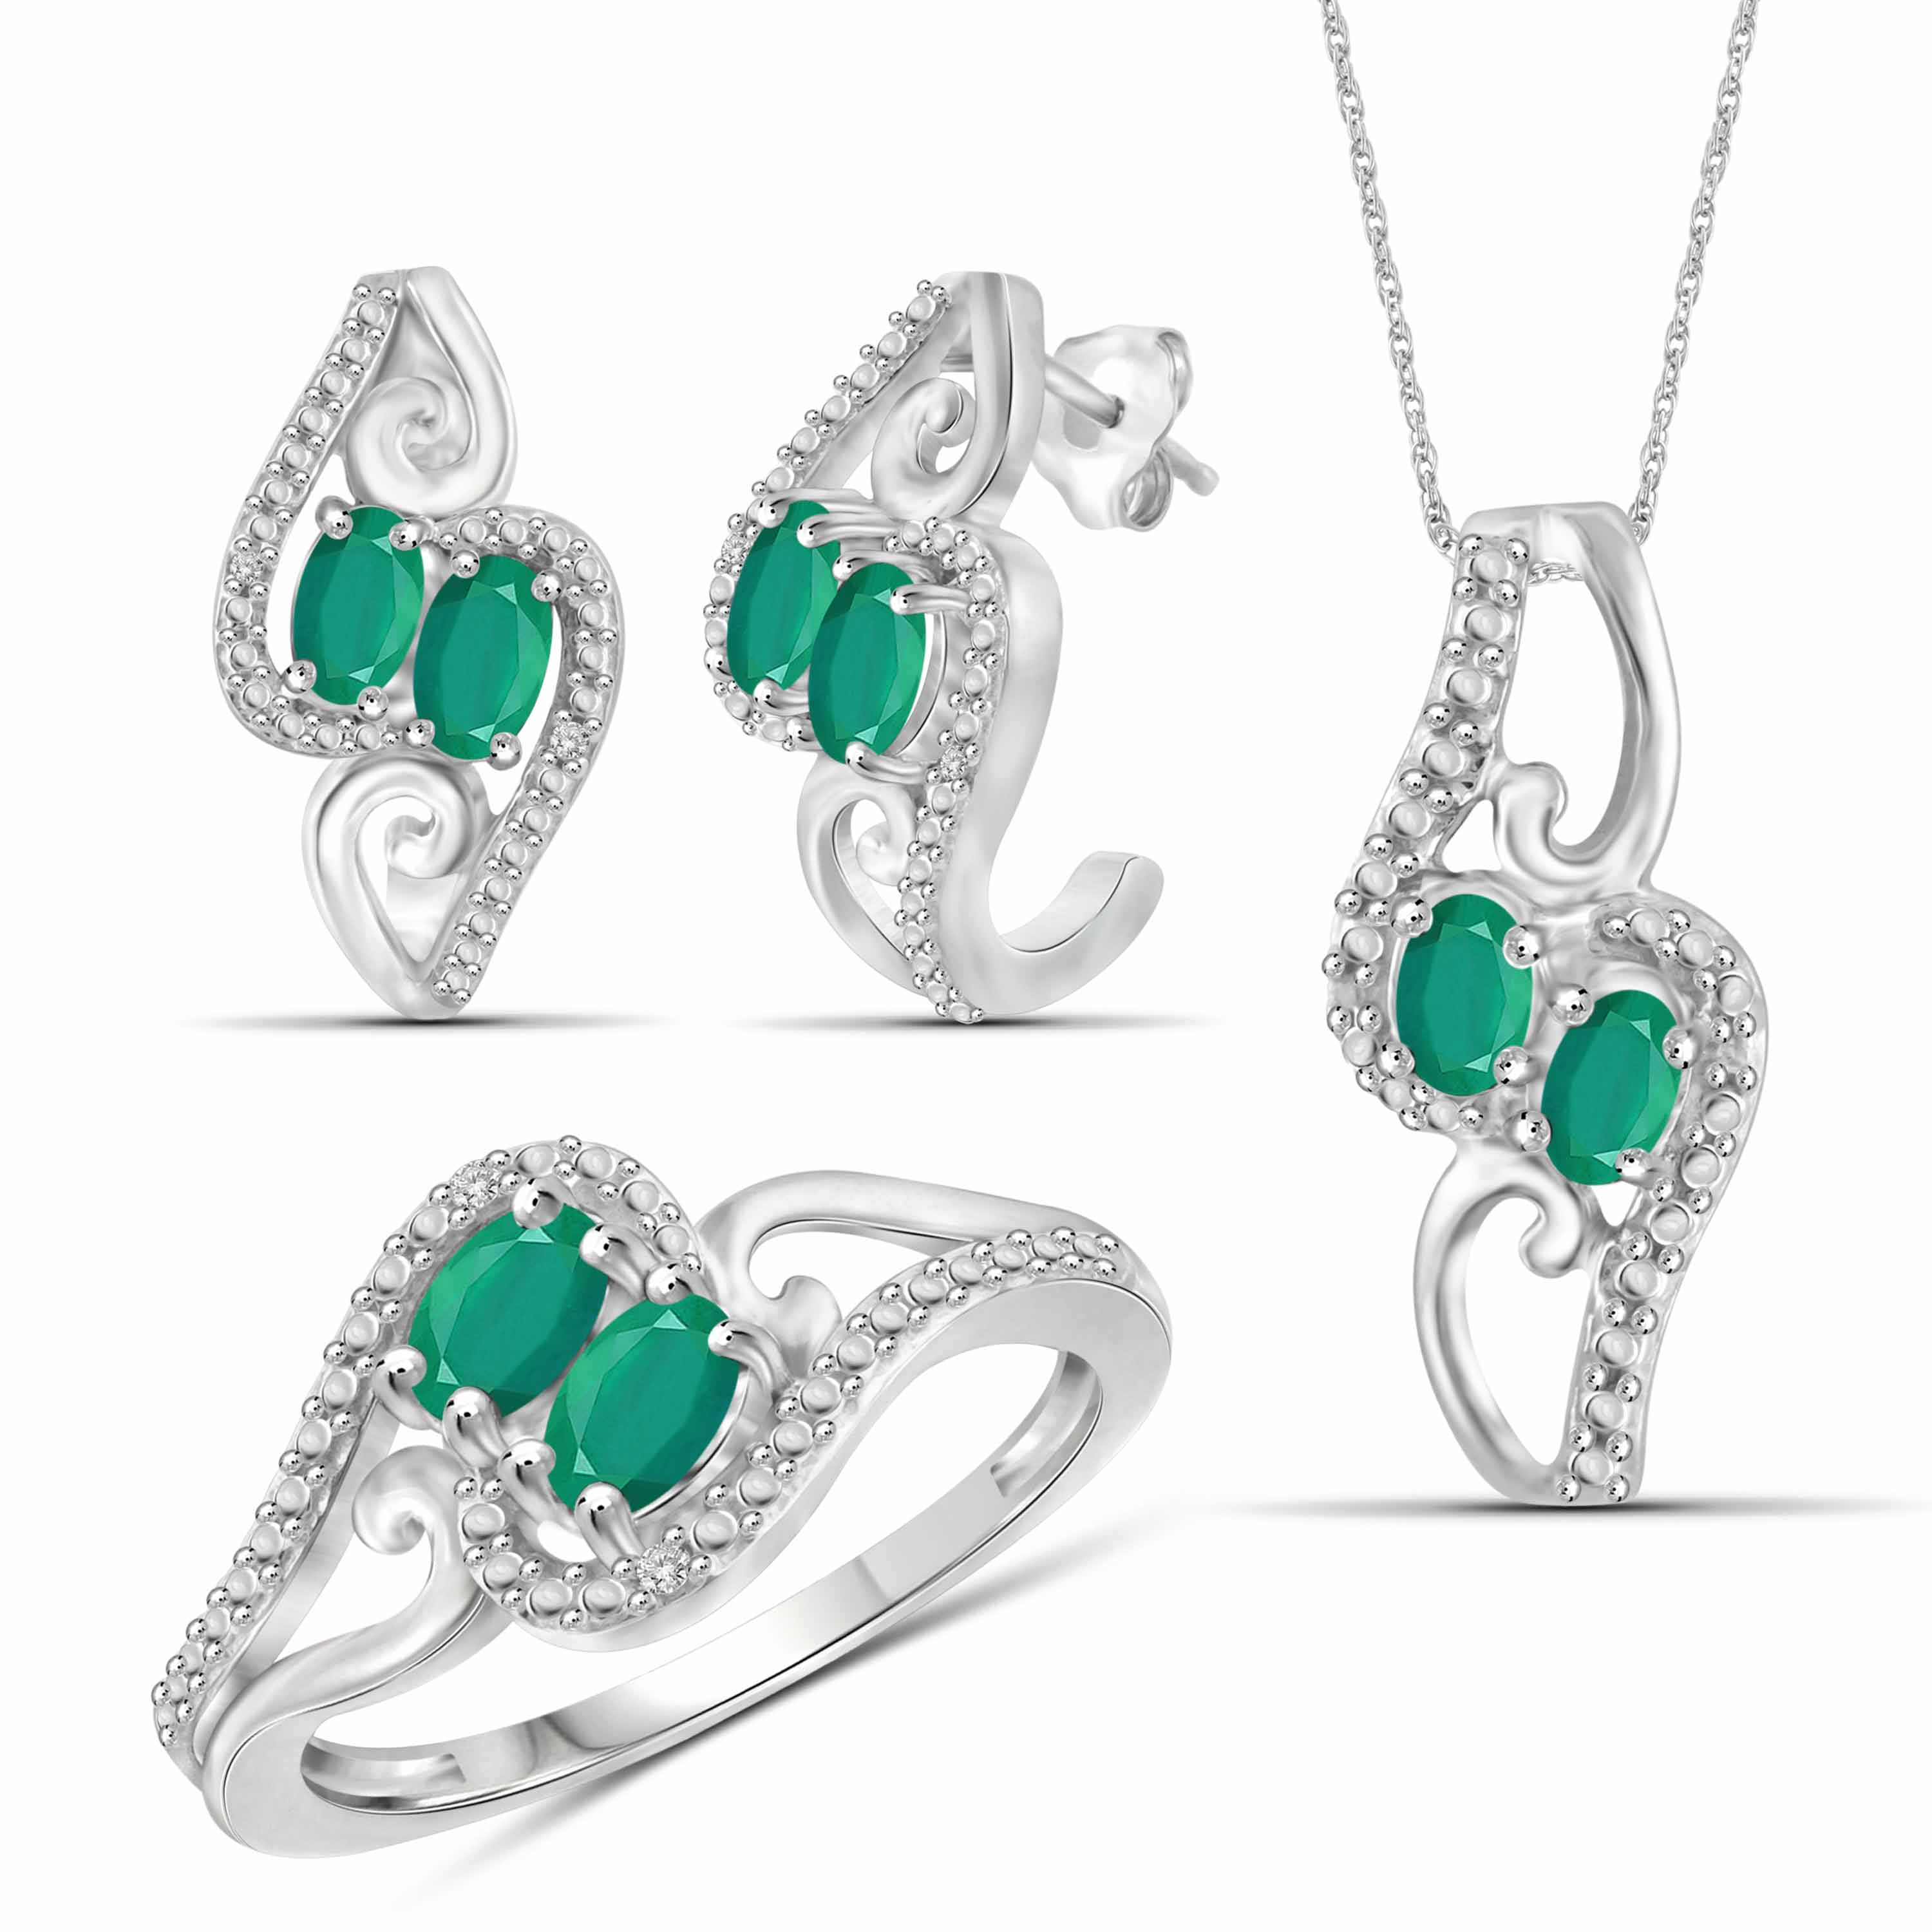 JewelersClub 1 3/4 Carat T.G.W. Emerald And White Diamond Accent Sterling Silver 3-Piece Jewelry set